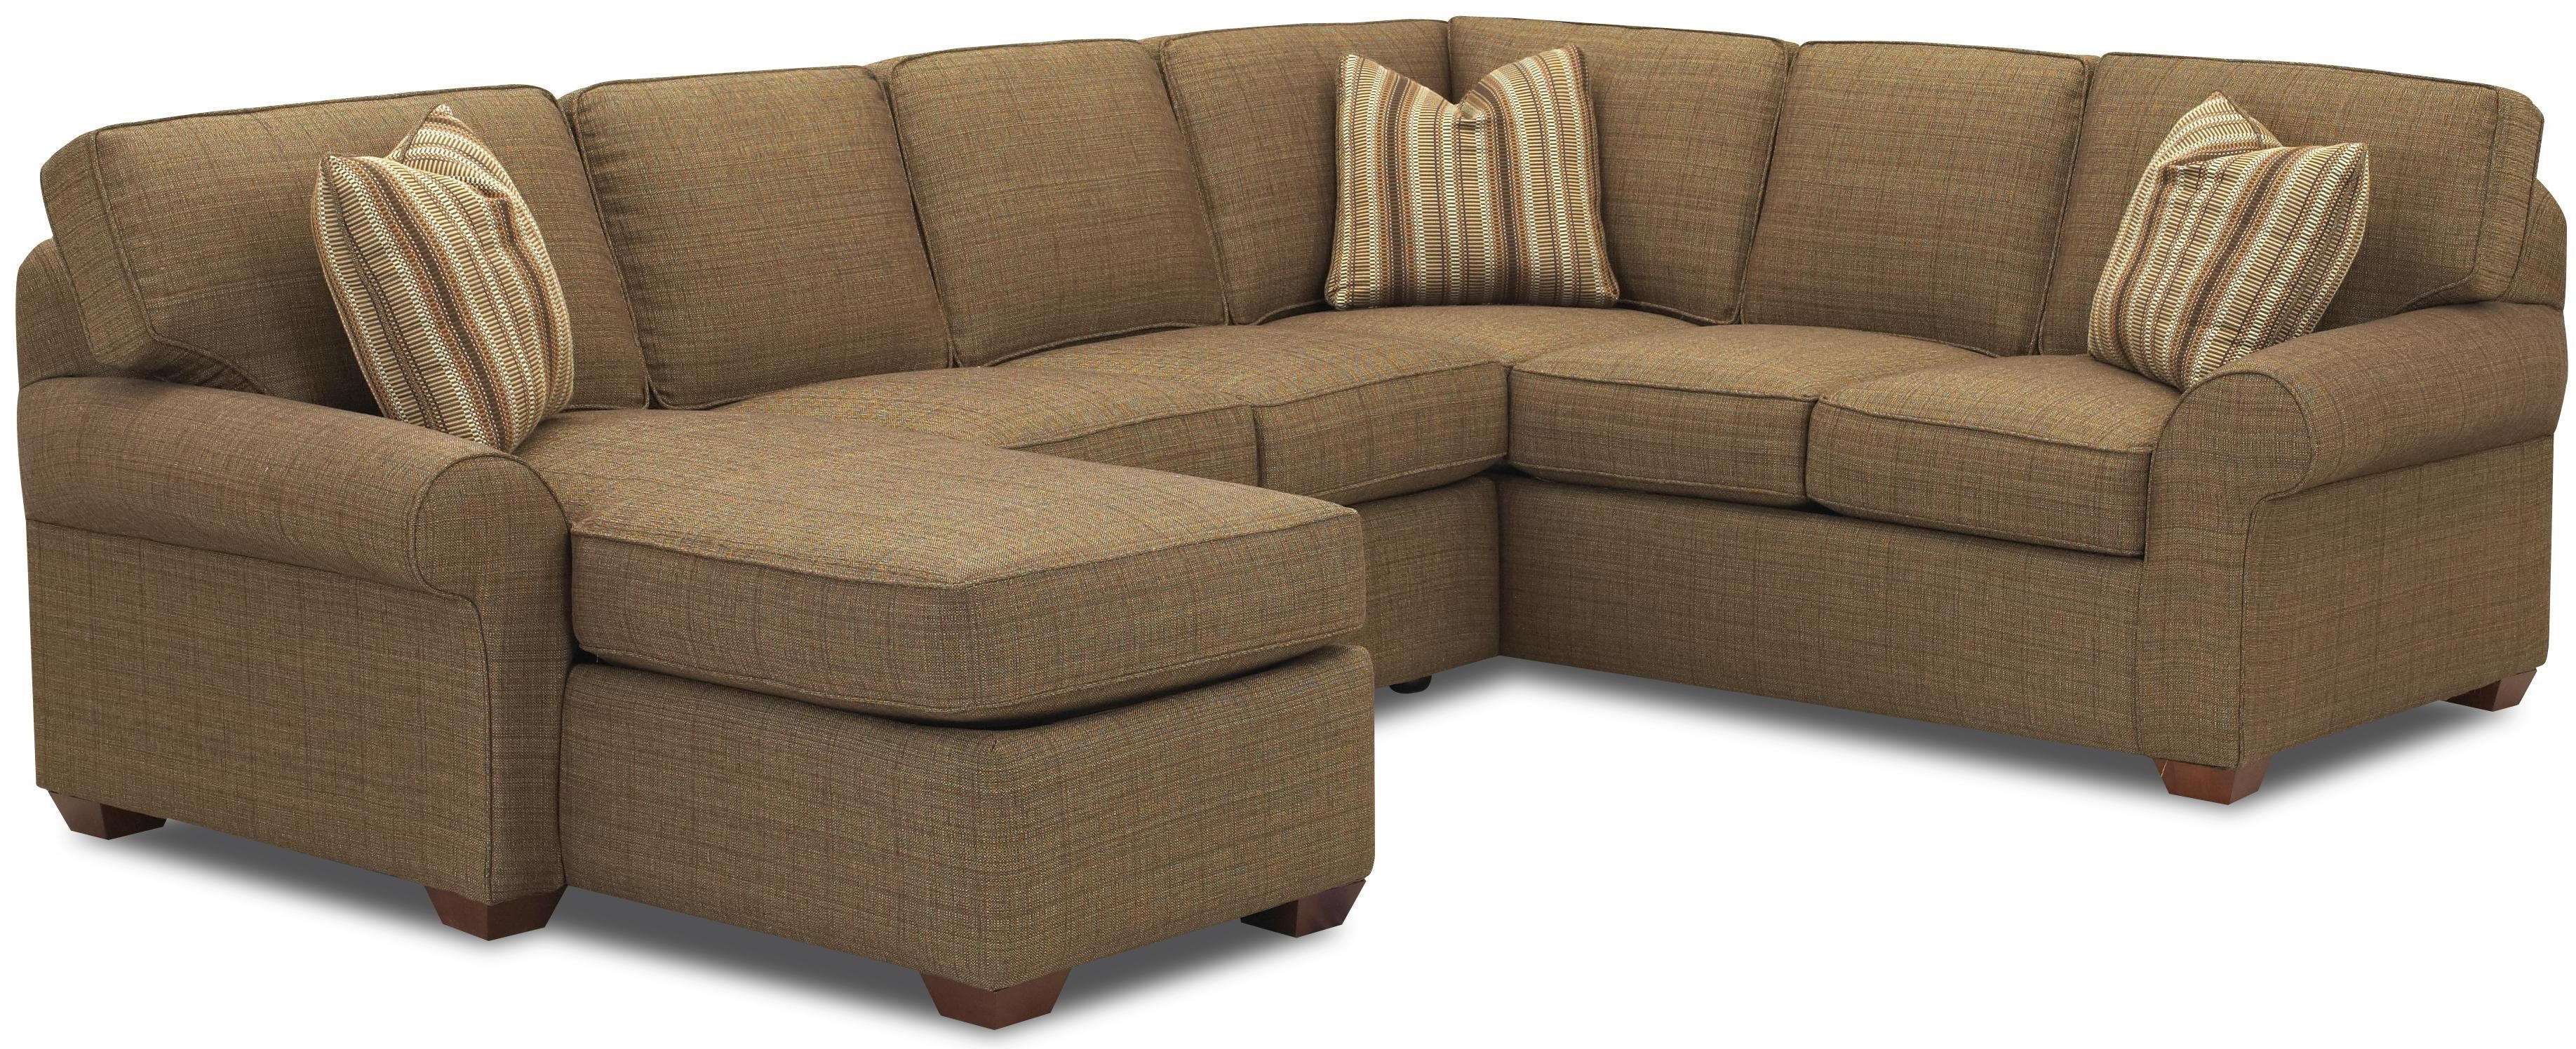 Preferred Fancy Sofa Chaise Lounge 48 For Your Modern Sofa Inspiration With Pertaining To Sofa Chaise Lounges (View 5 of 15)